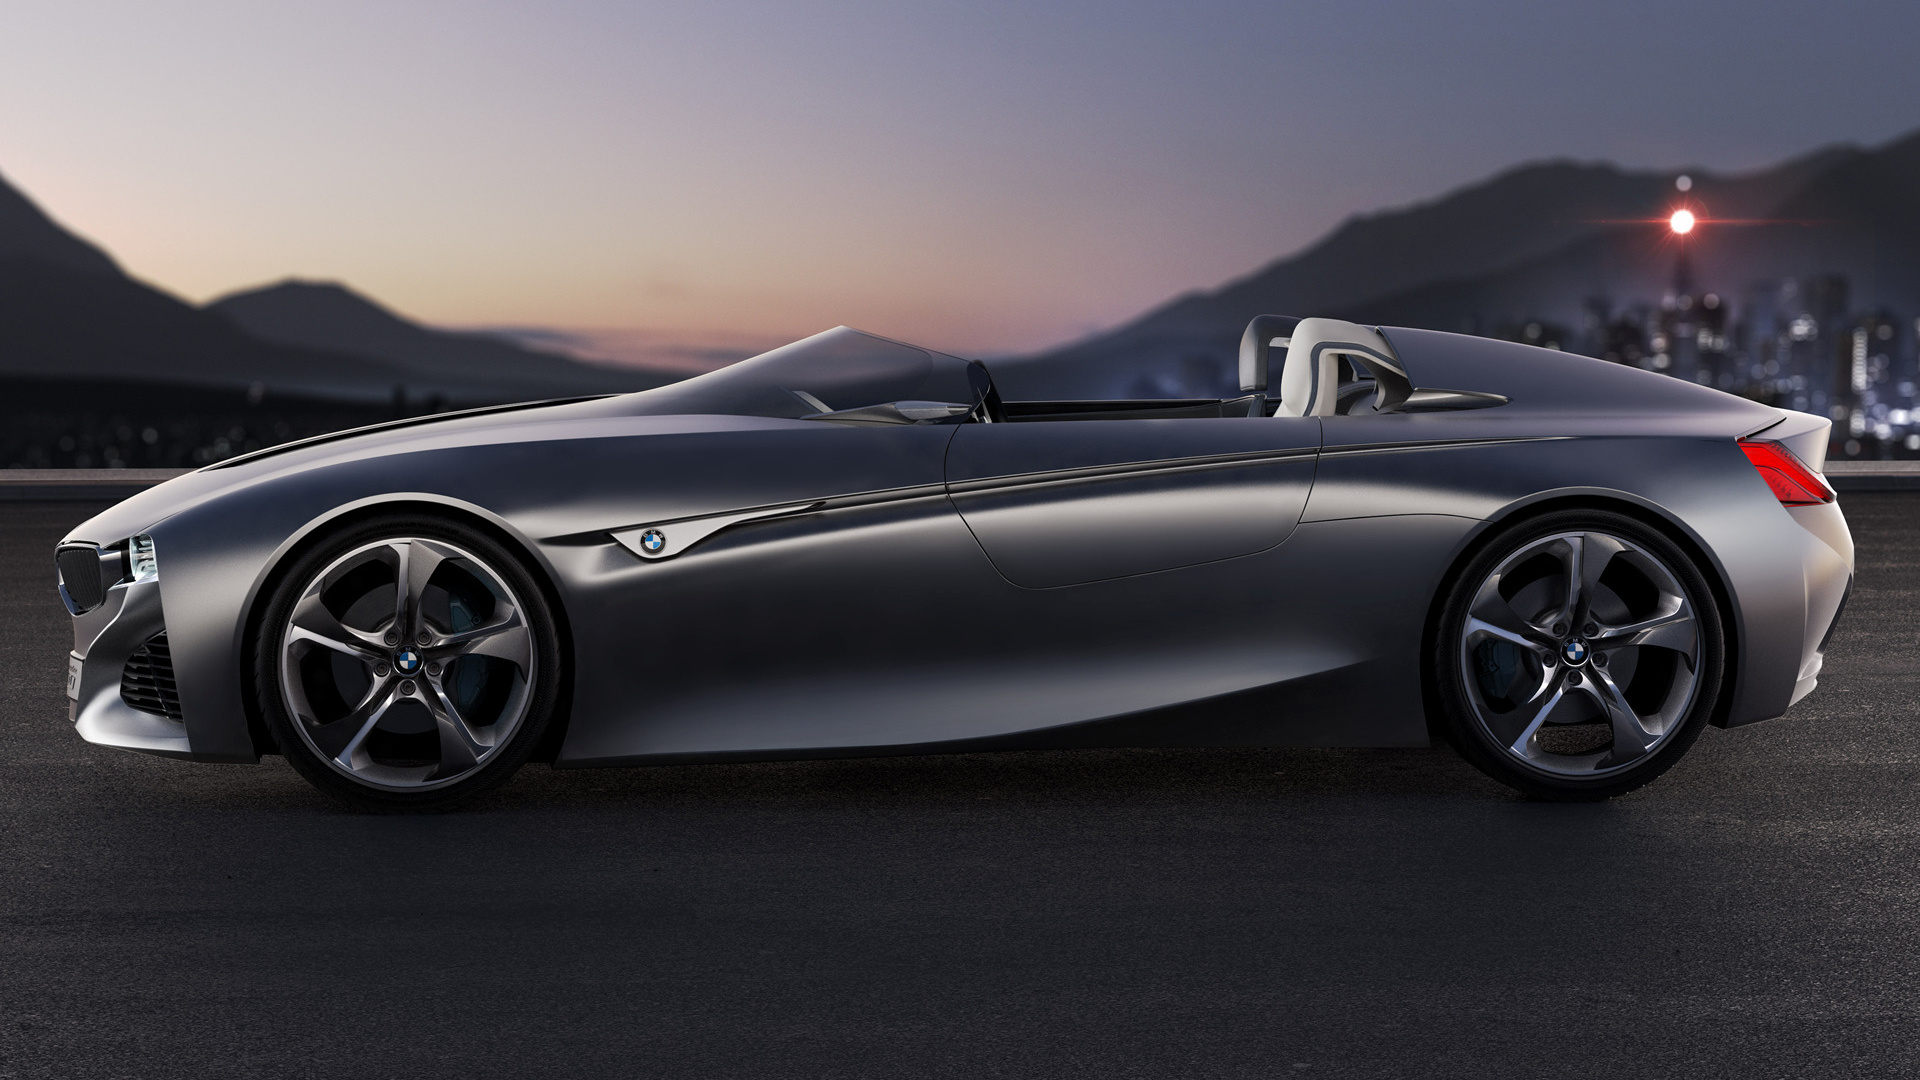 bmw vision connecteddrive 2011 wallpapers and hd images. Black Bedroom Furniture Sets. Home Design Ideas